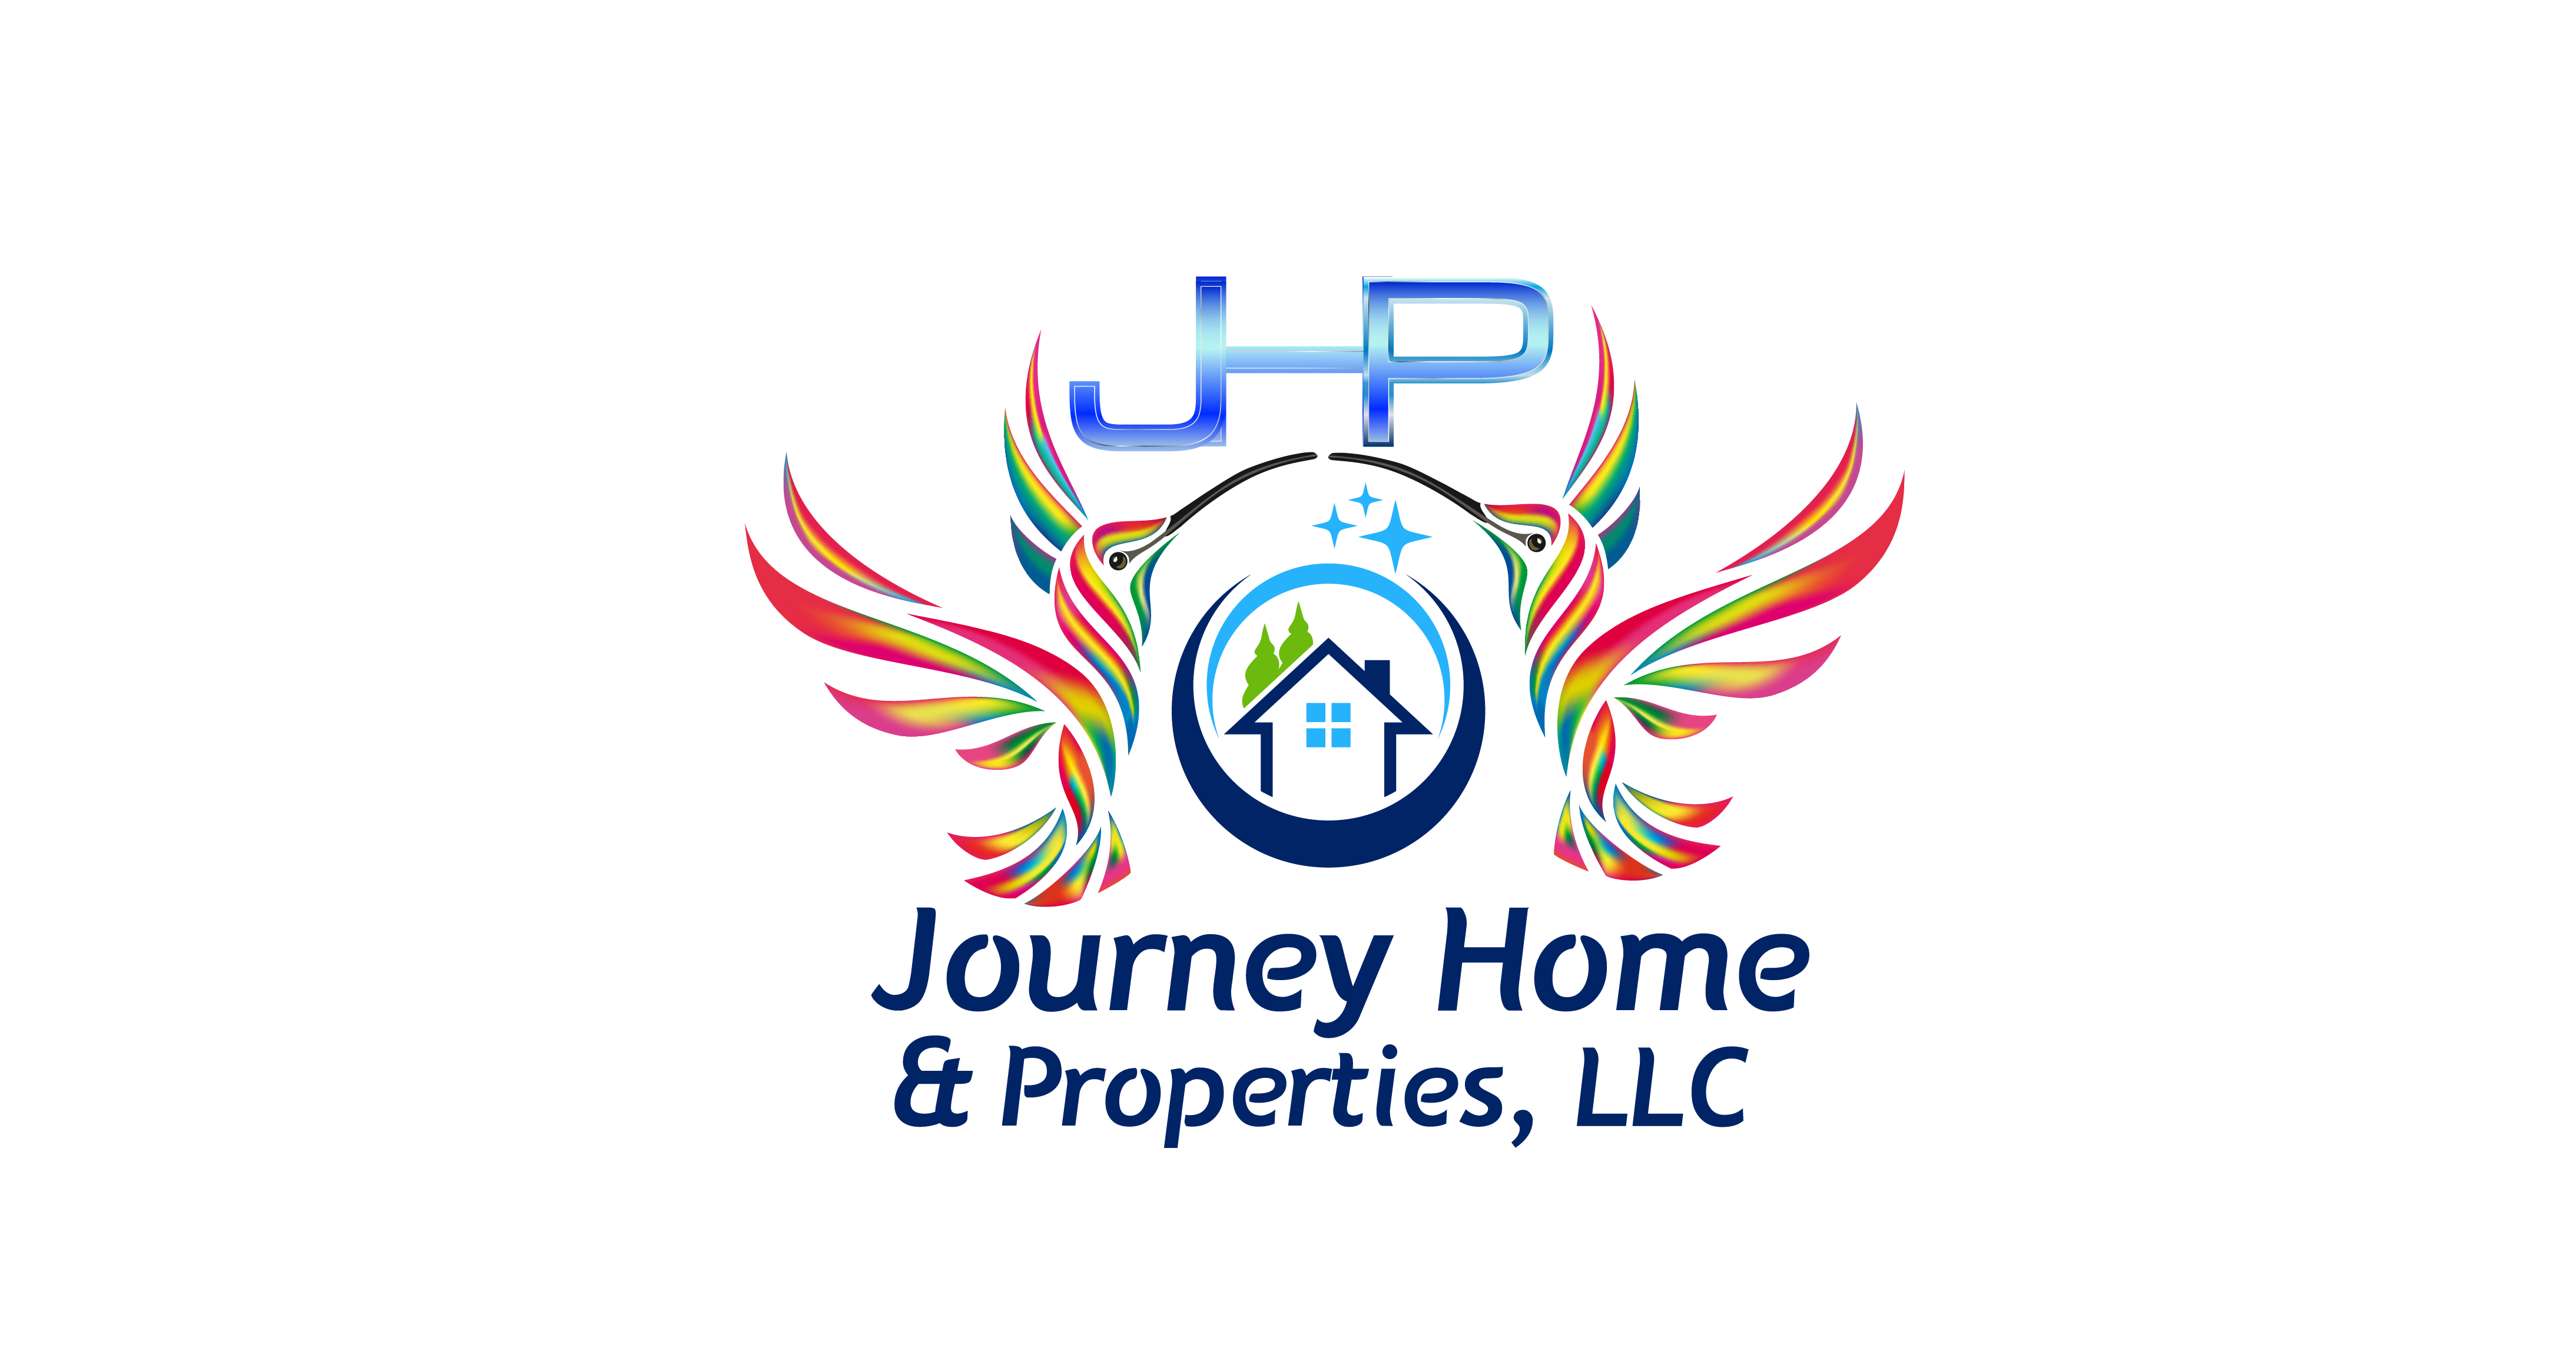 Journey Home & Properties, LLC